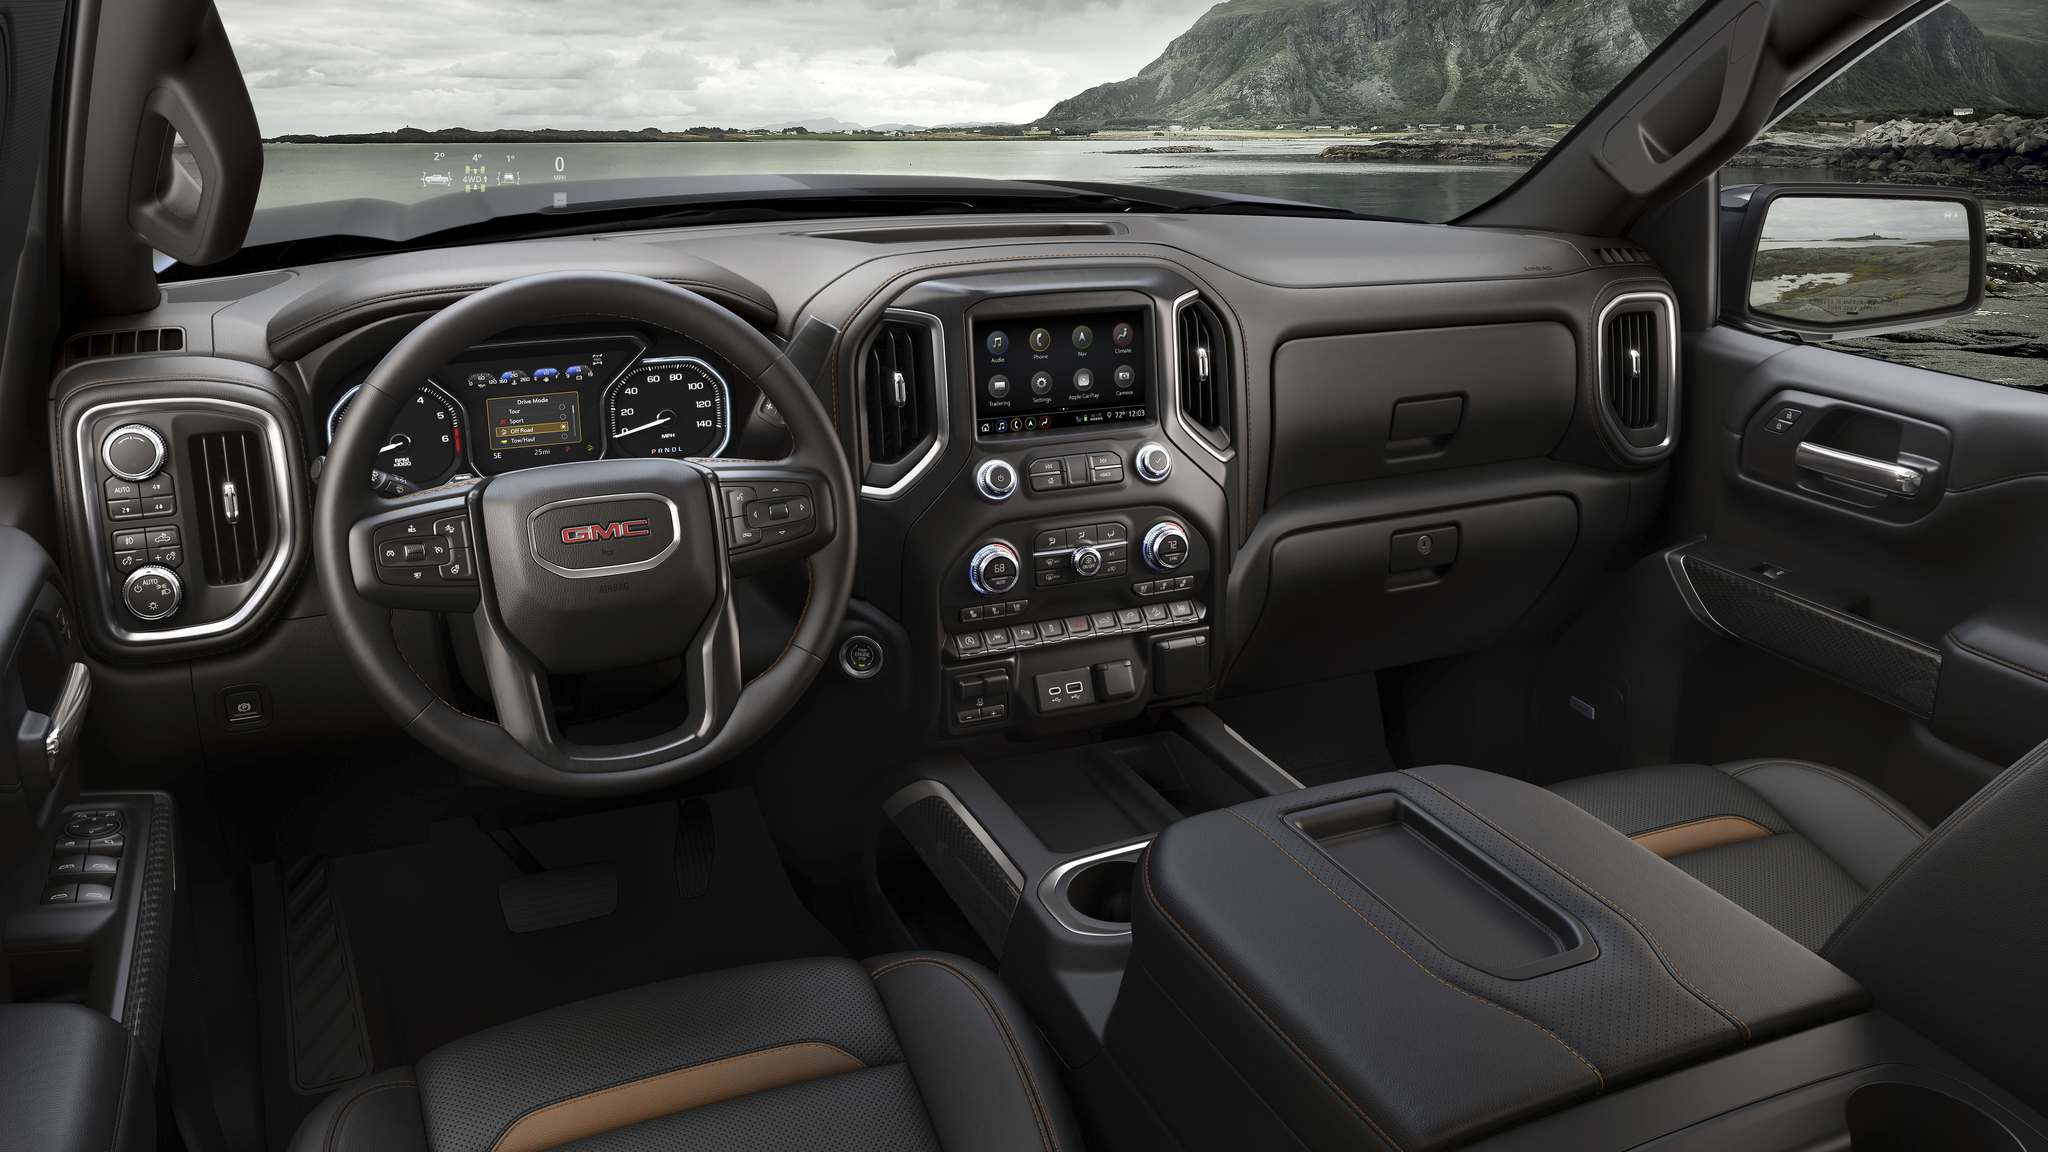 PHOTOS BY GMCGMC's 2019 Sierra AT4 is equipped to take on the rough stuff without trouble, while remaining a comfortable and practical choice.